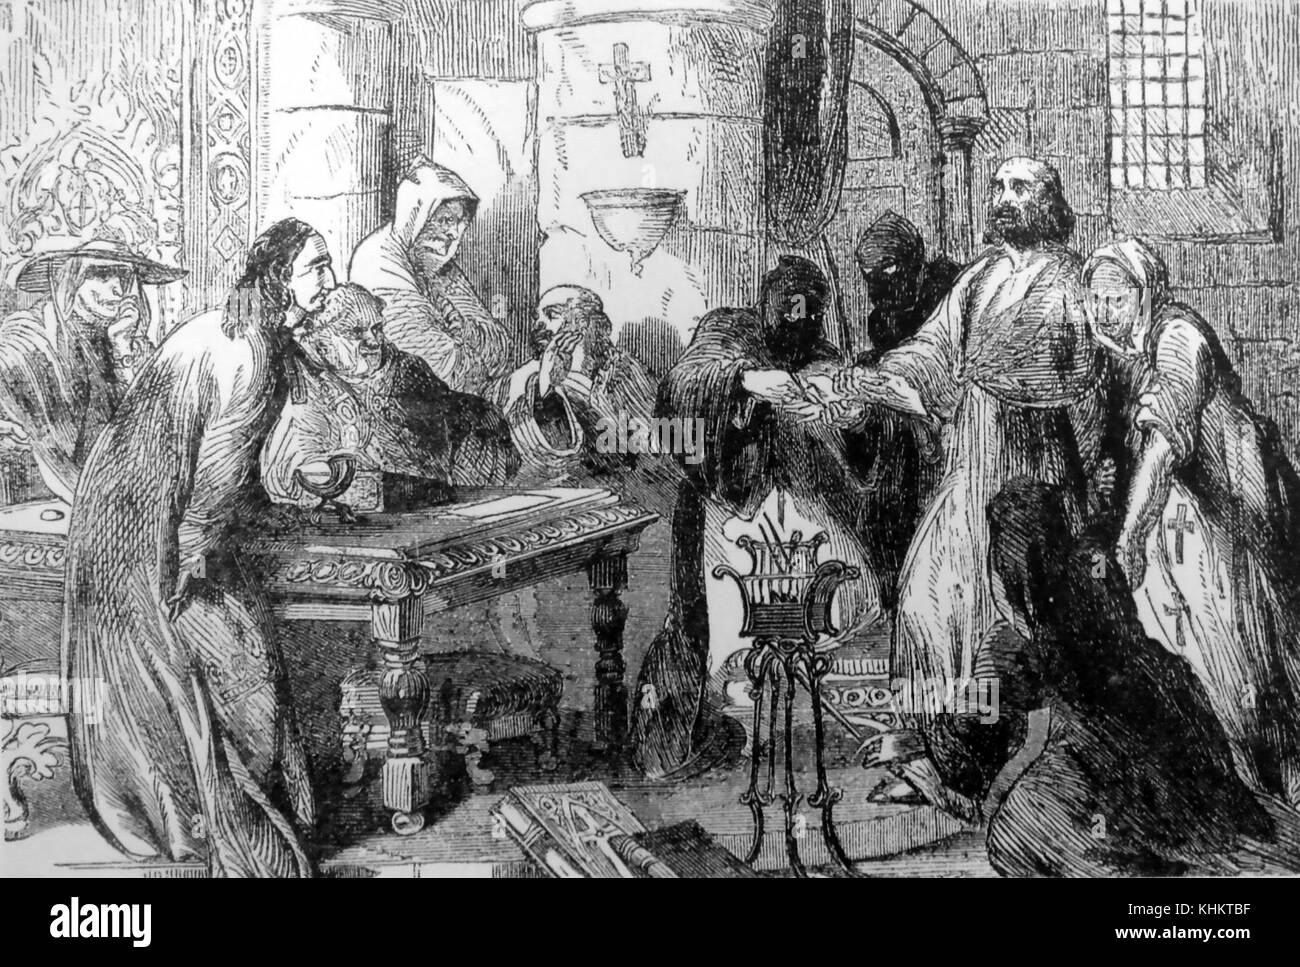 JACQUES de MOLAY (c 1243-1314) last Grand Master of the Knights Templar under torture in 1307. - Stock Image